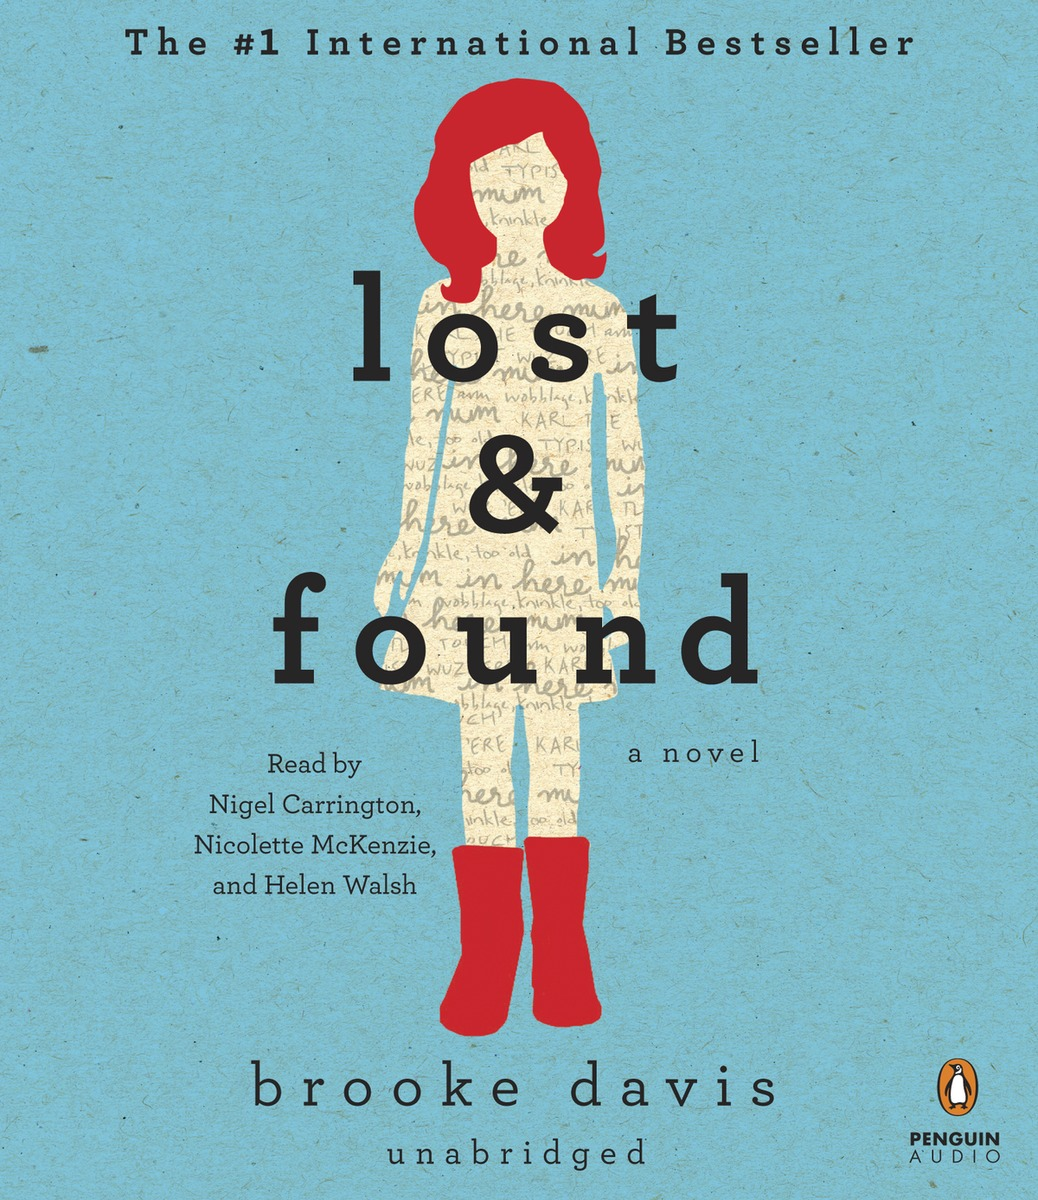 LOST & FOUND wild a journey from lost to found